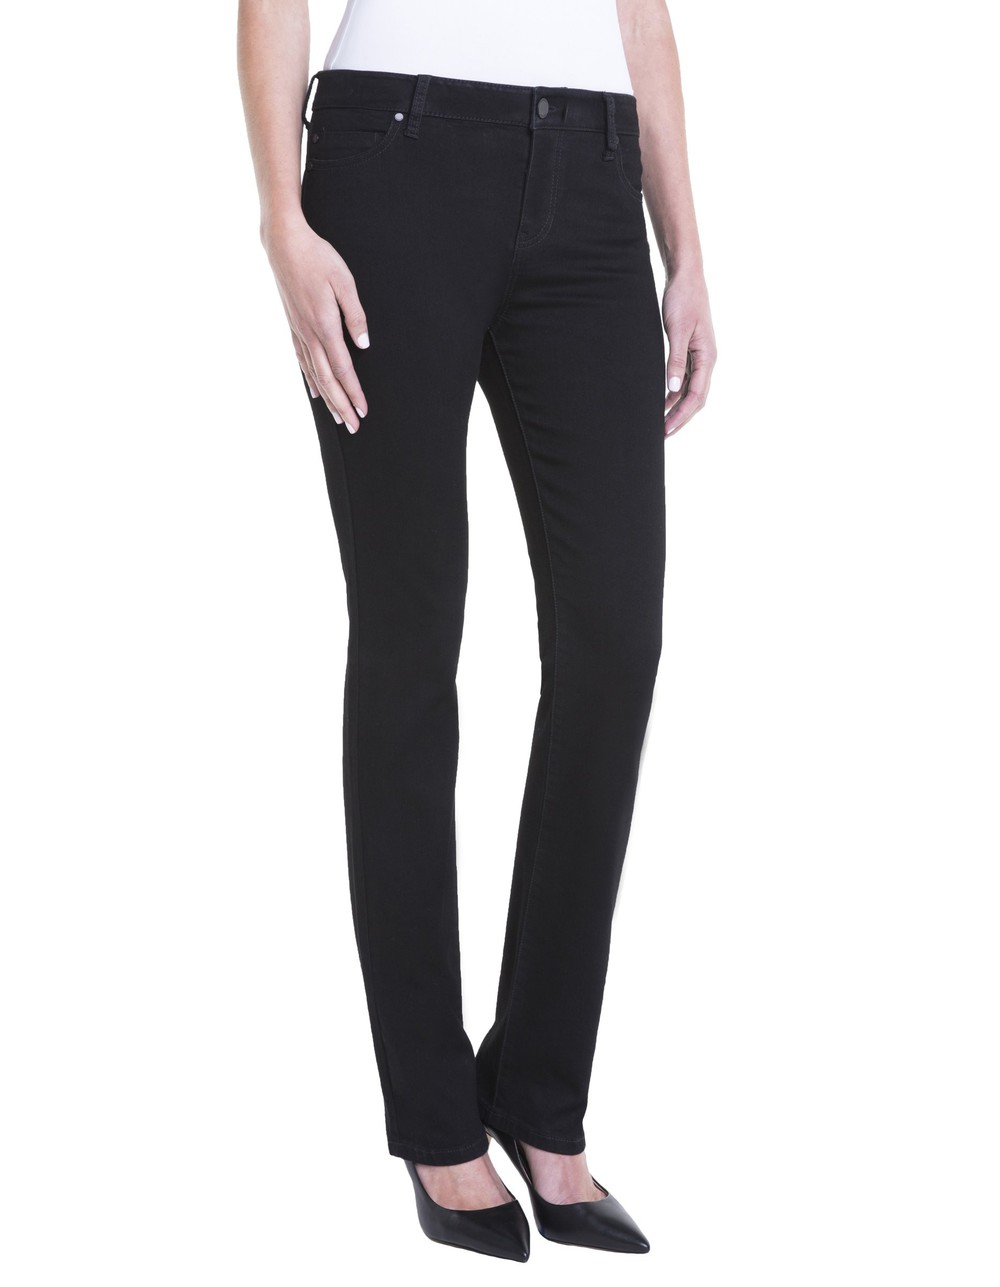 Liverpool Sadie Straight jeans in black